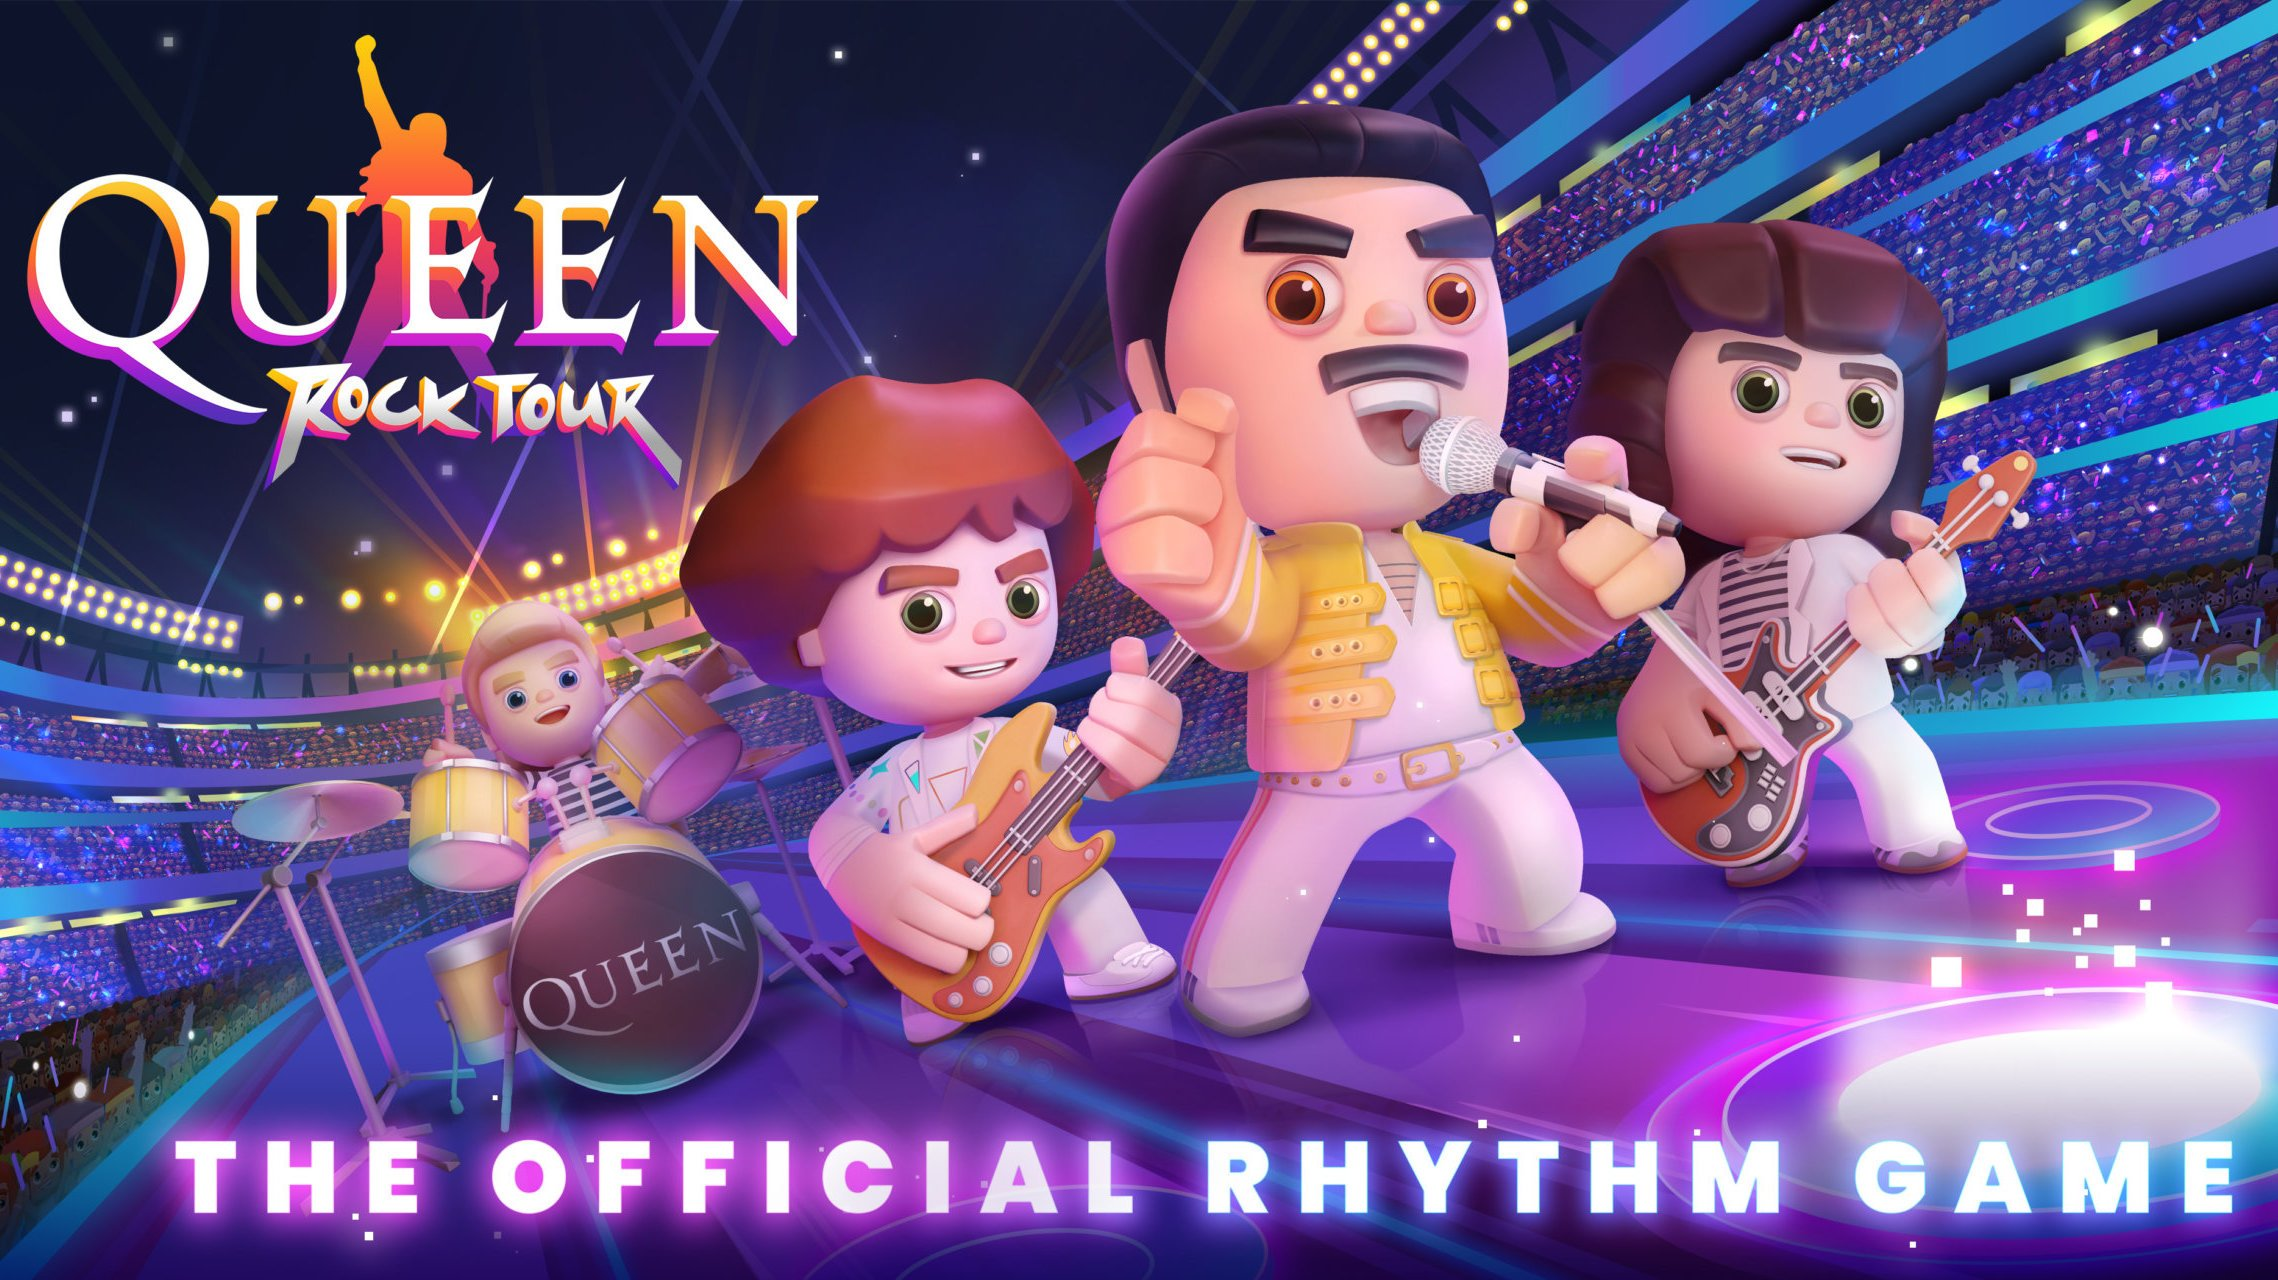 Universal launches Queen game, developed by Vivendi-owned Gameloft – Music Business Worldwide